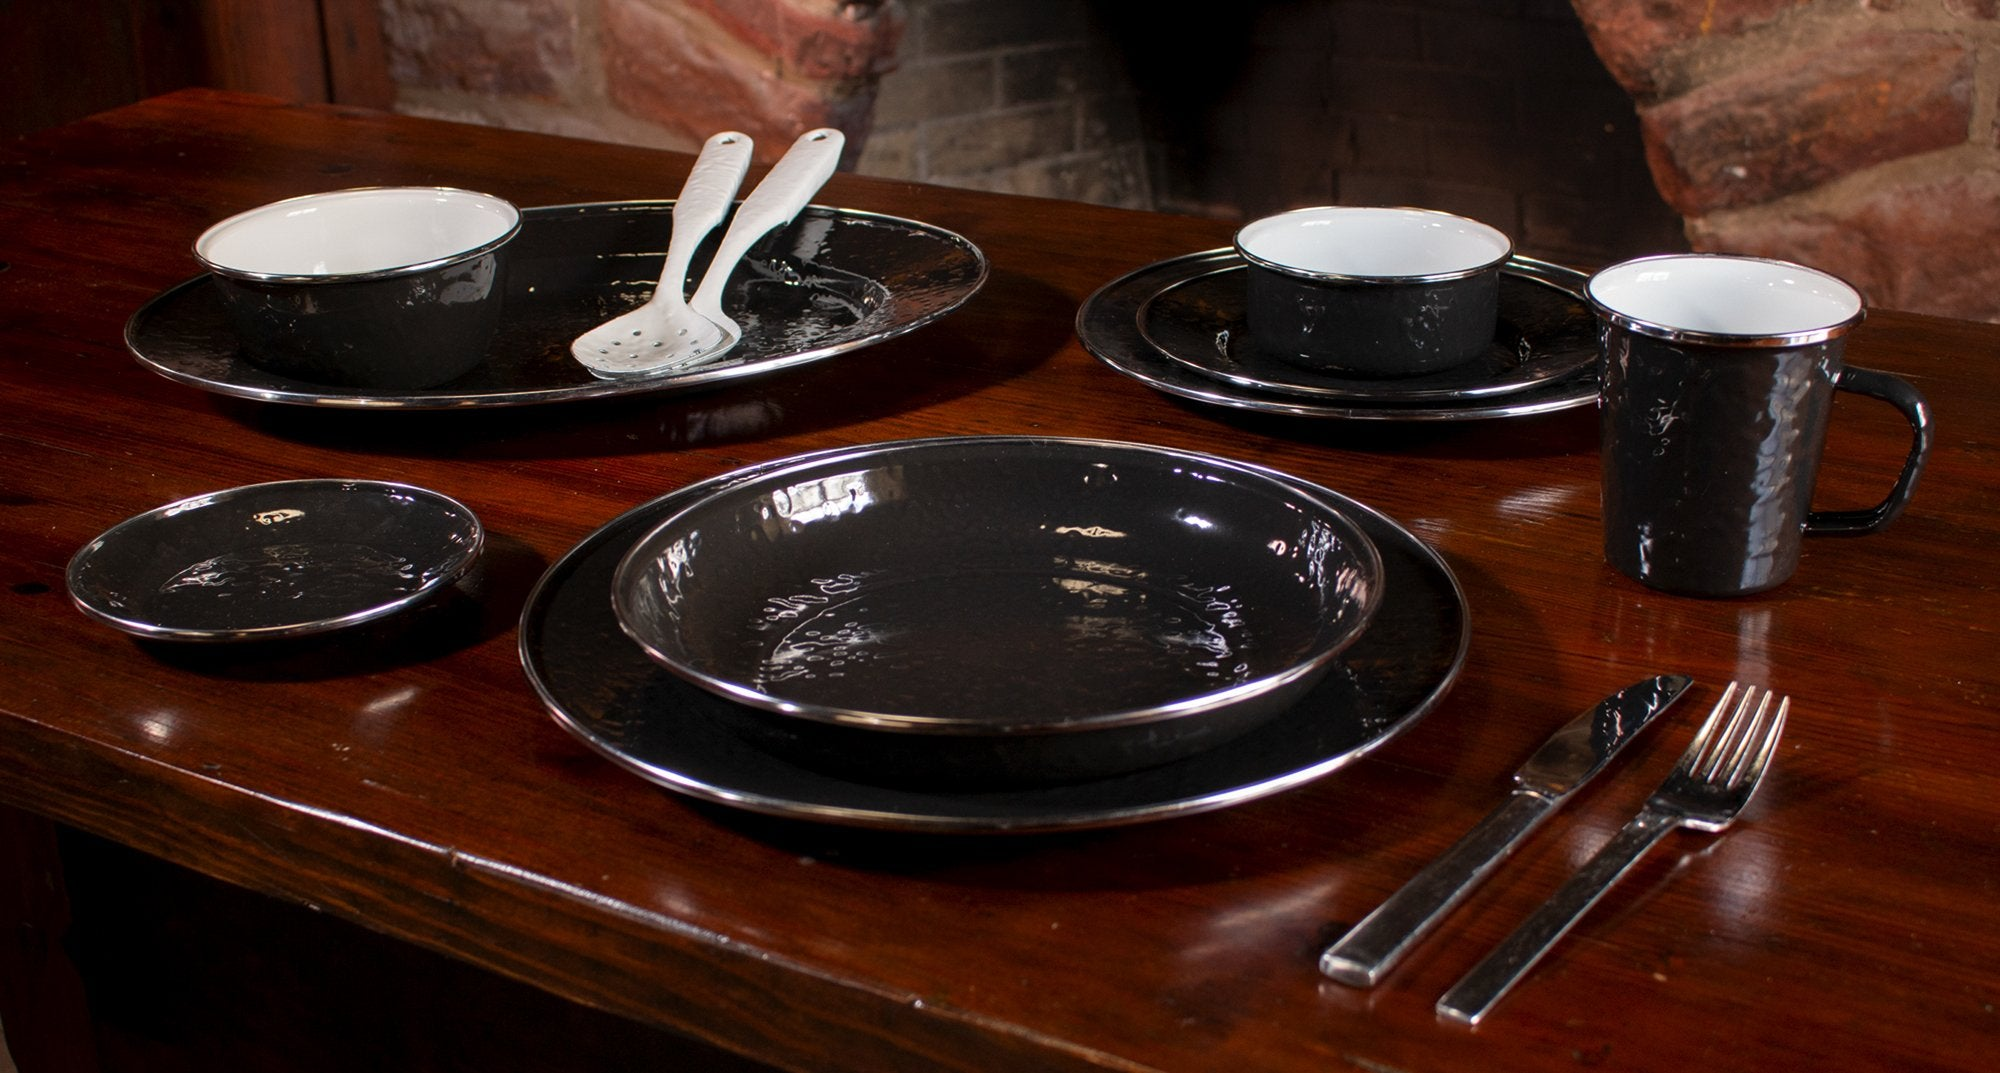 BK61S4 - Set of 4 Solid Black Salad Bowls Image 2